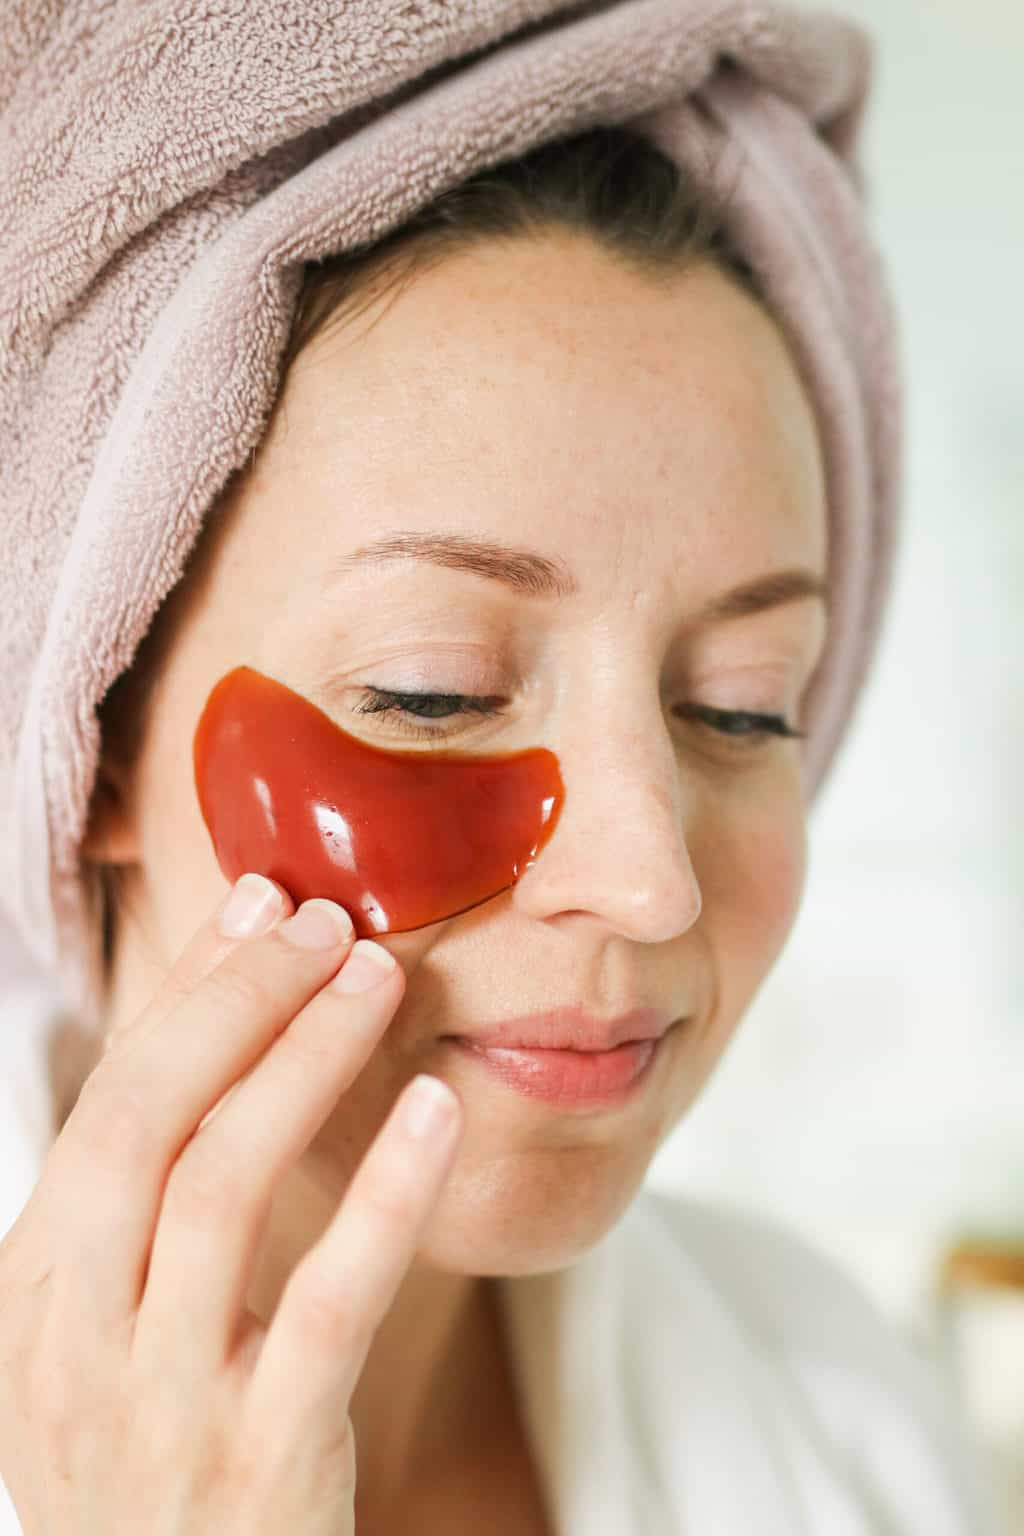 These homemade gel eye mask patches are loaded with pomegranate and rose hip seed oil to hydrate, plump and get rid of those pesky eye bags.